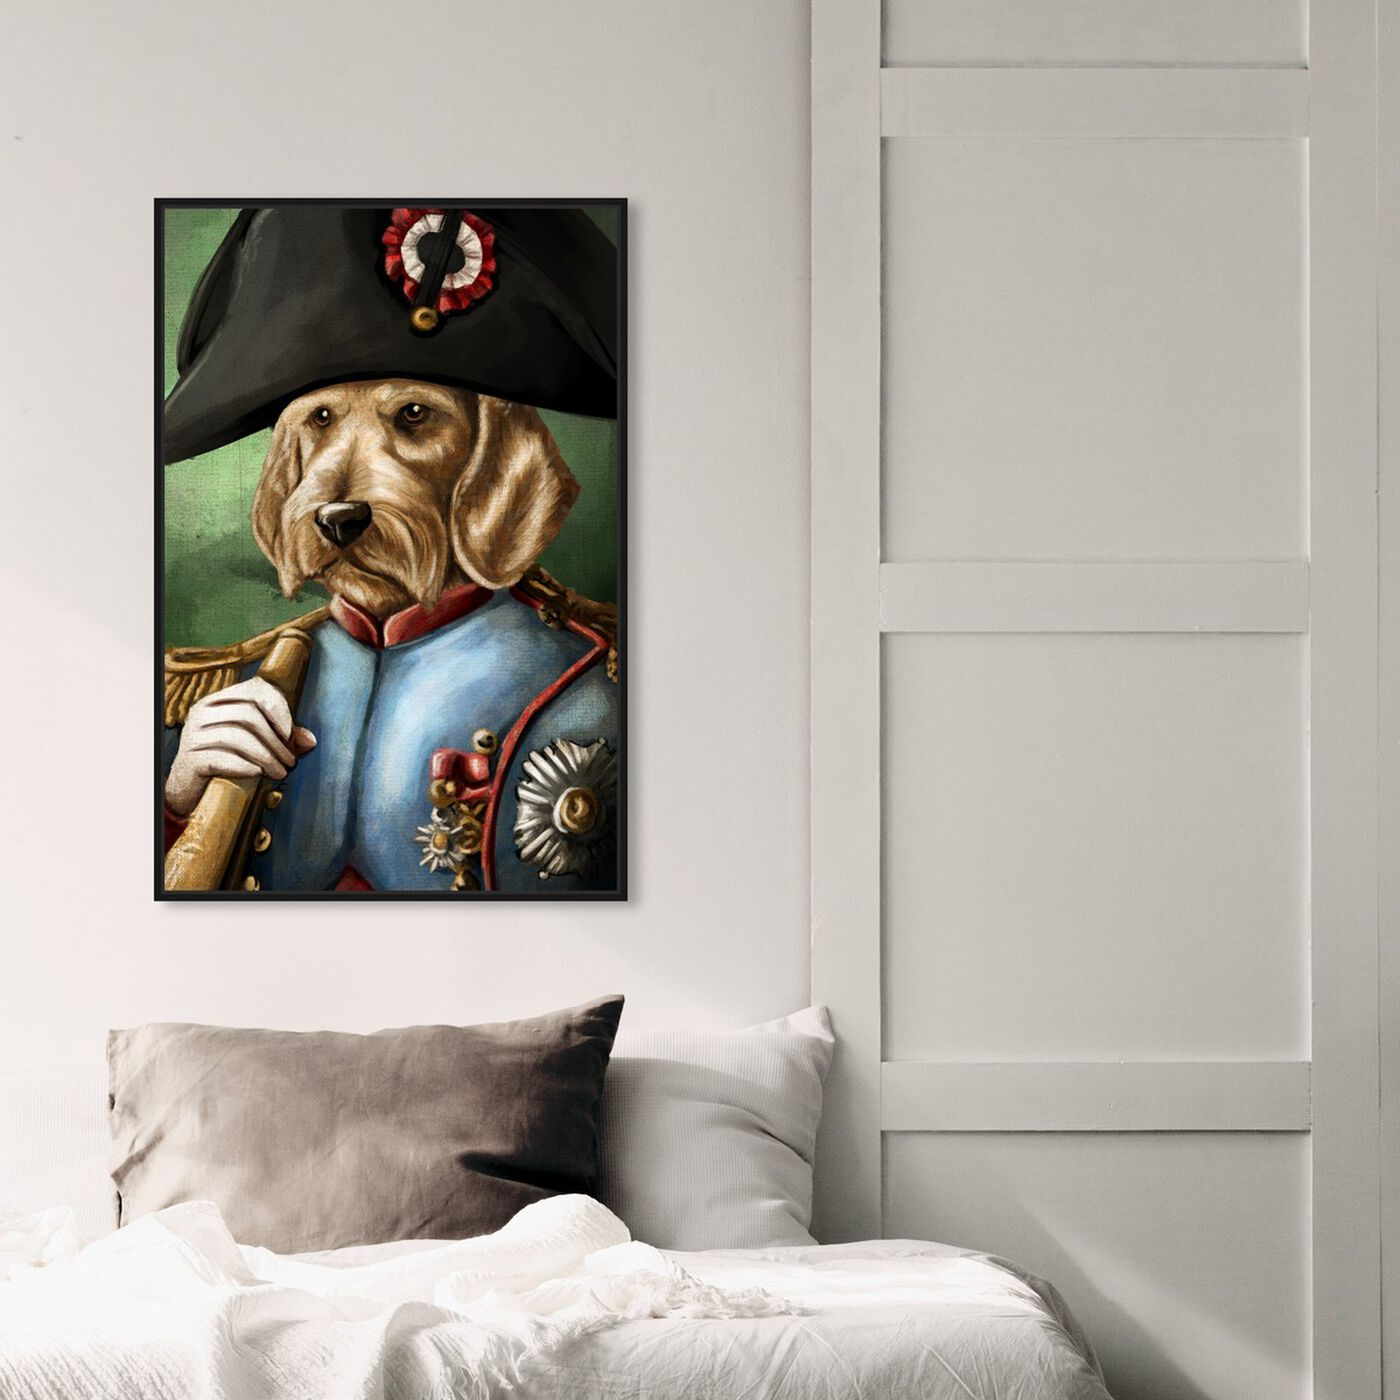 Hanging view of Sargent Wired Dashchund featuring animals and dogs and puppies art.